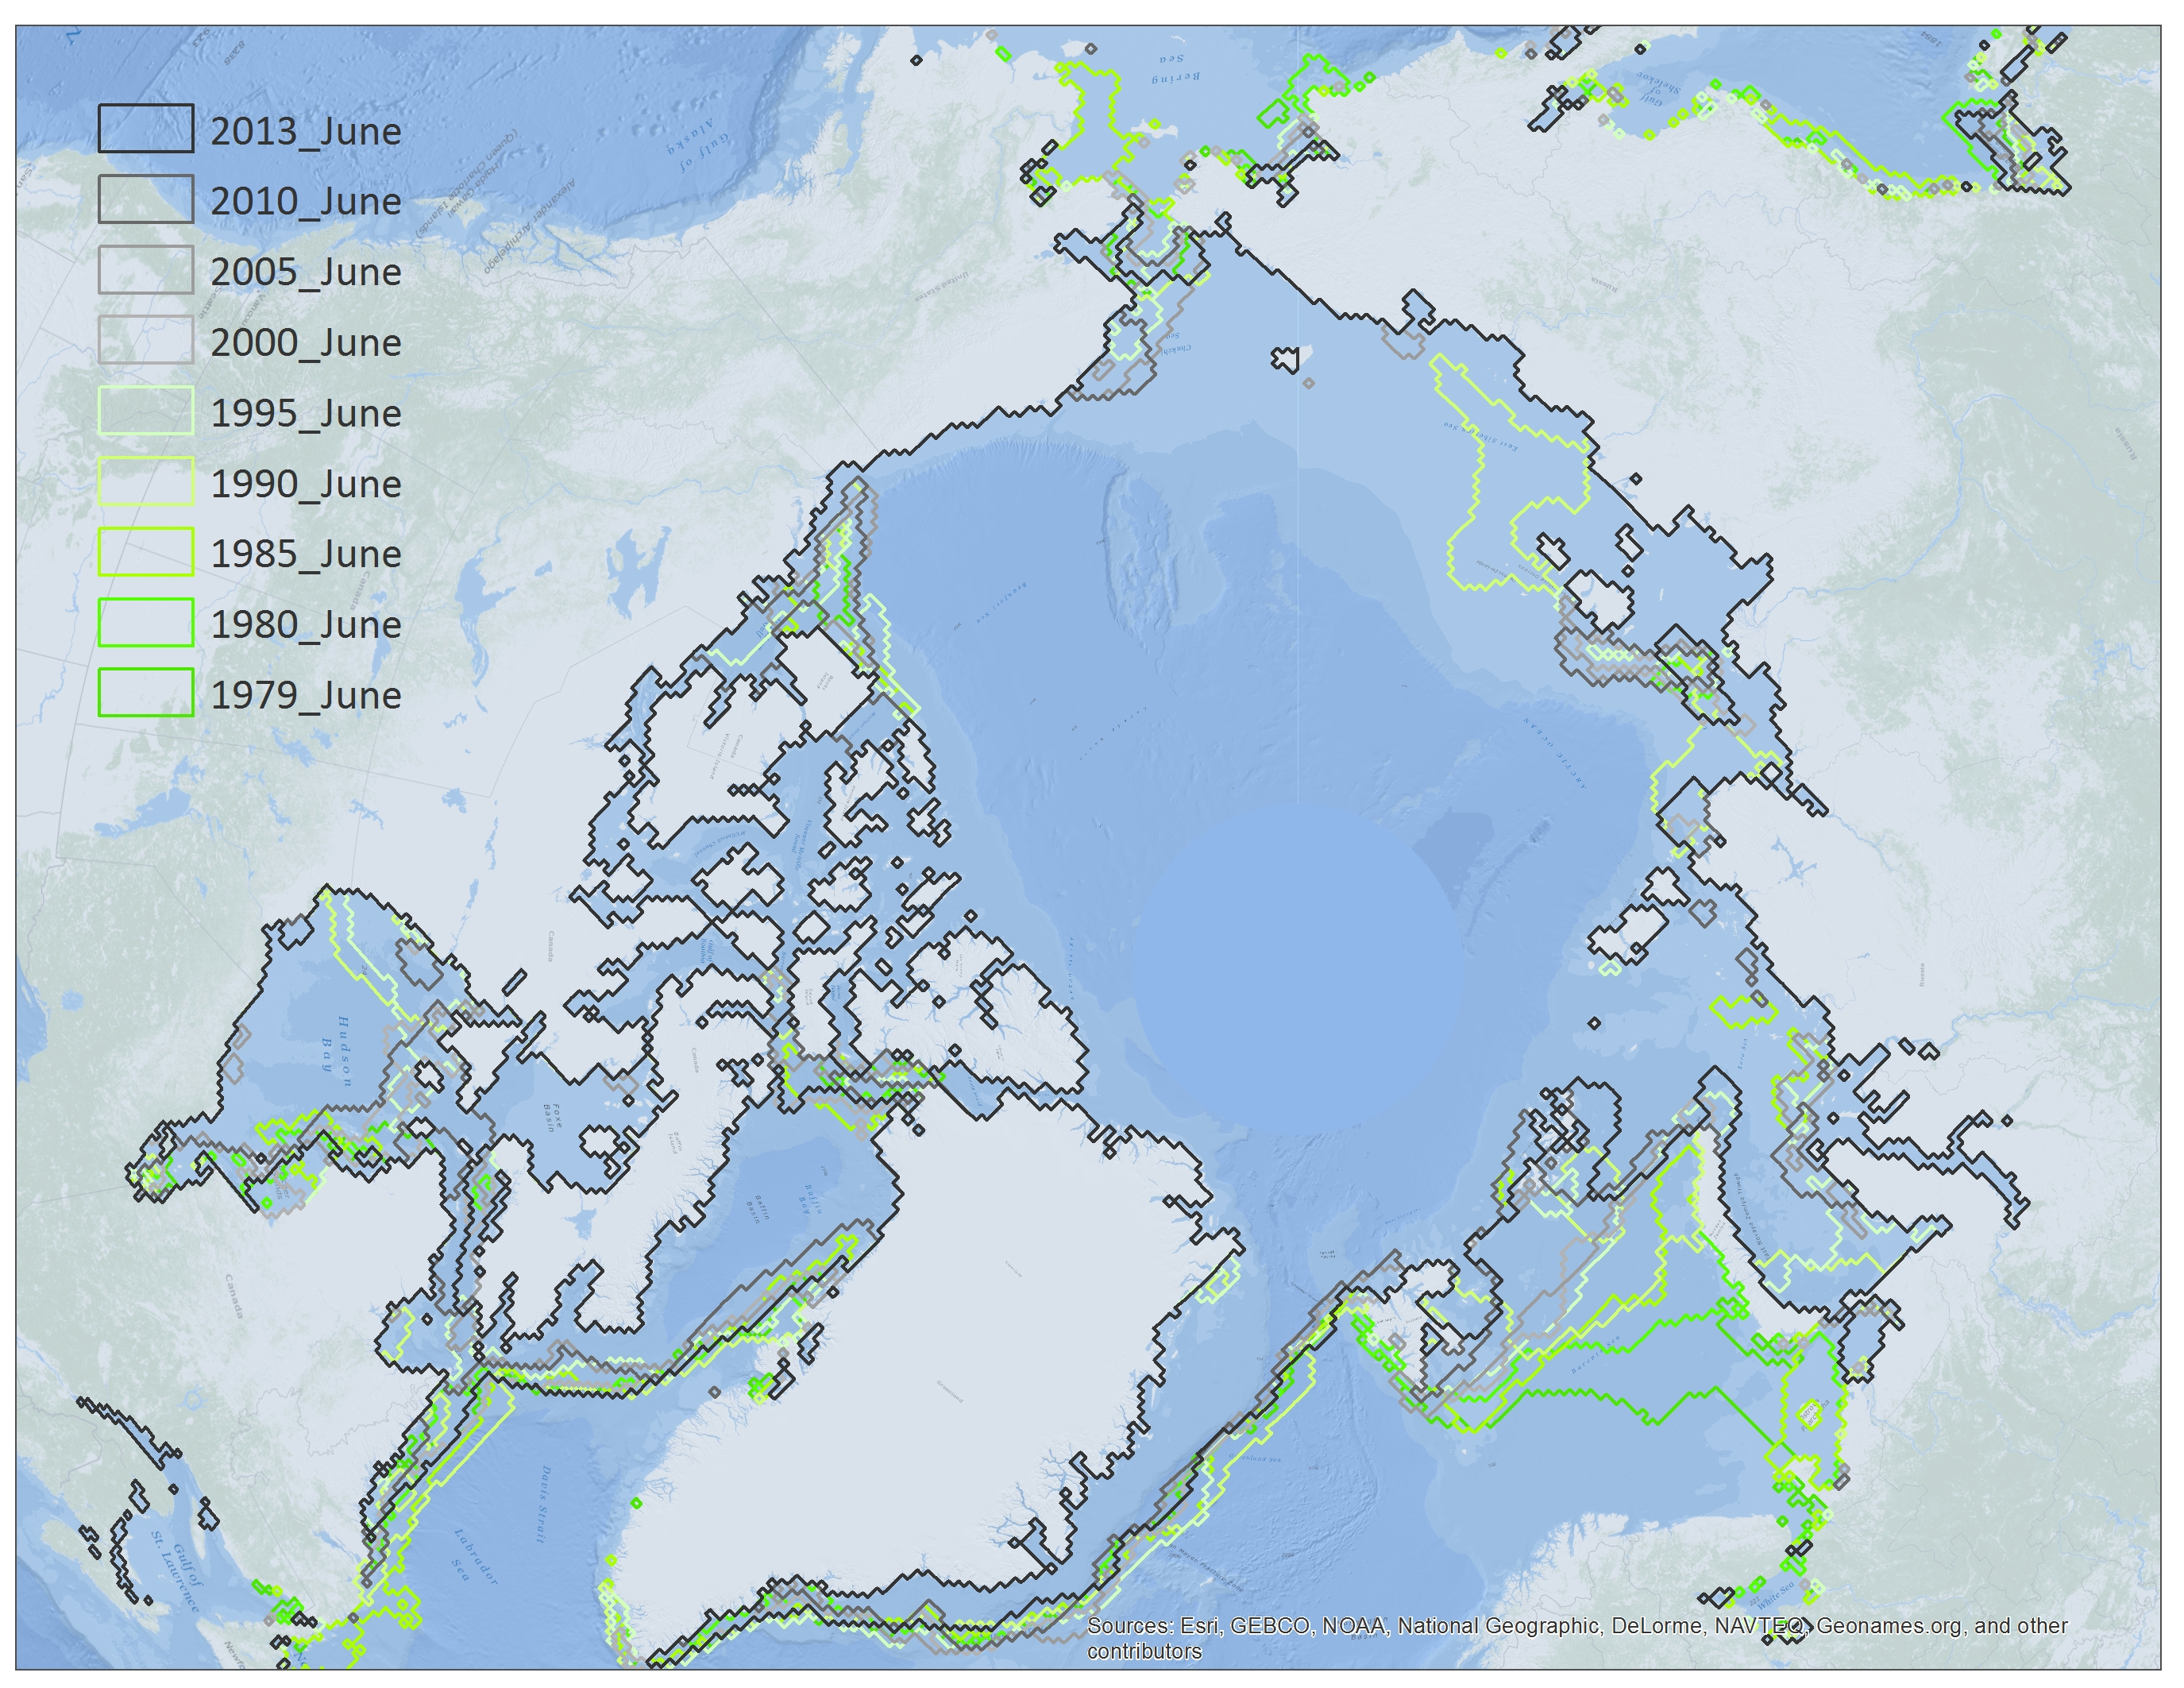 North Pole Ice Extent